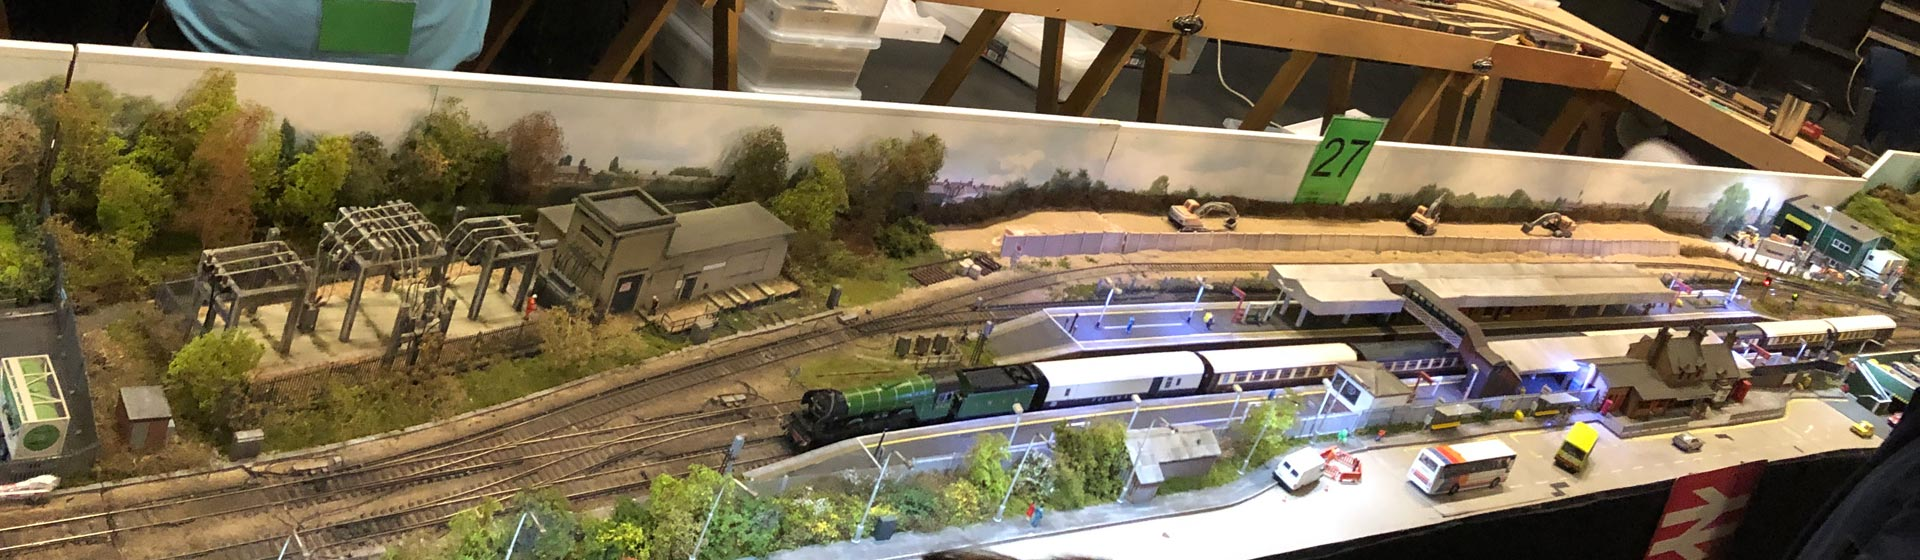 Southampton Model Railway Exhibition Layout